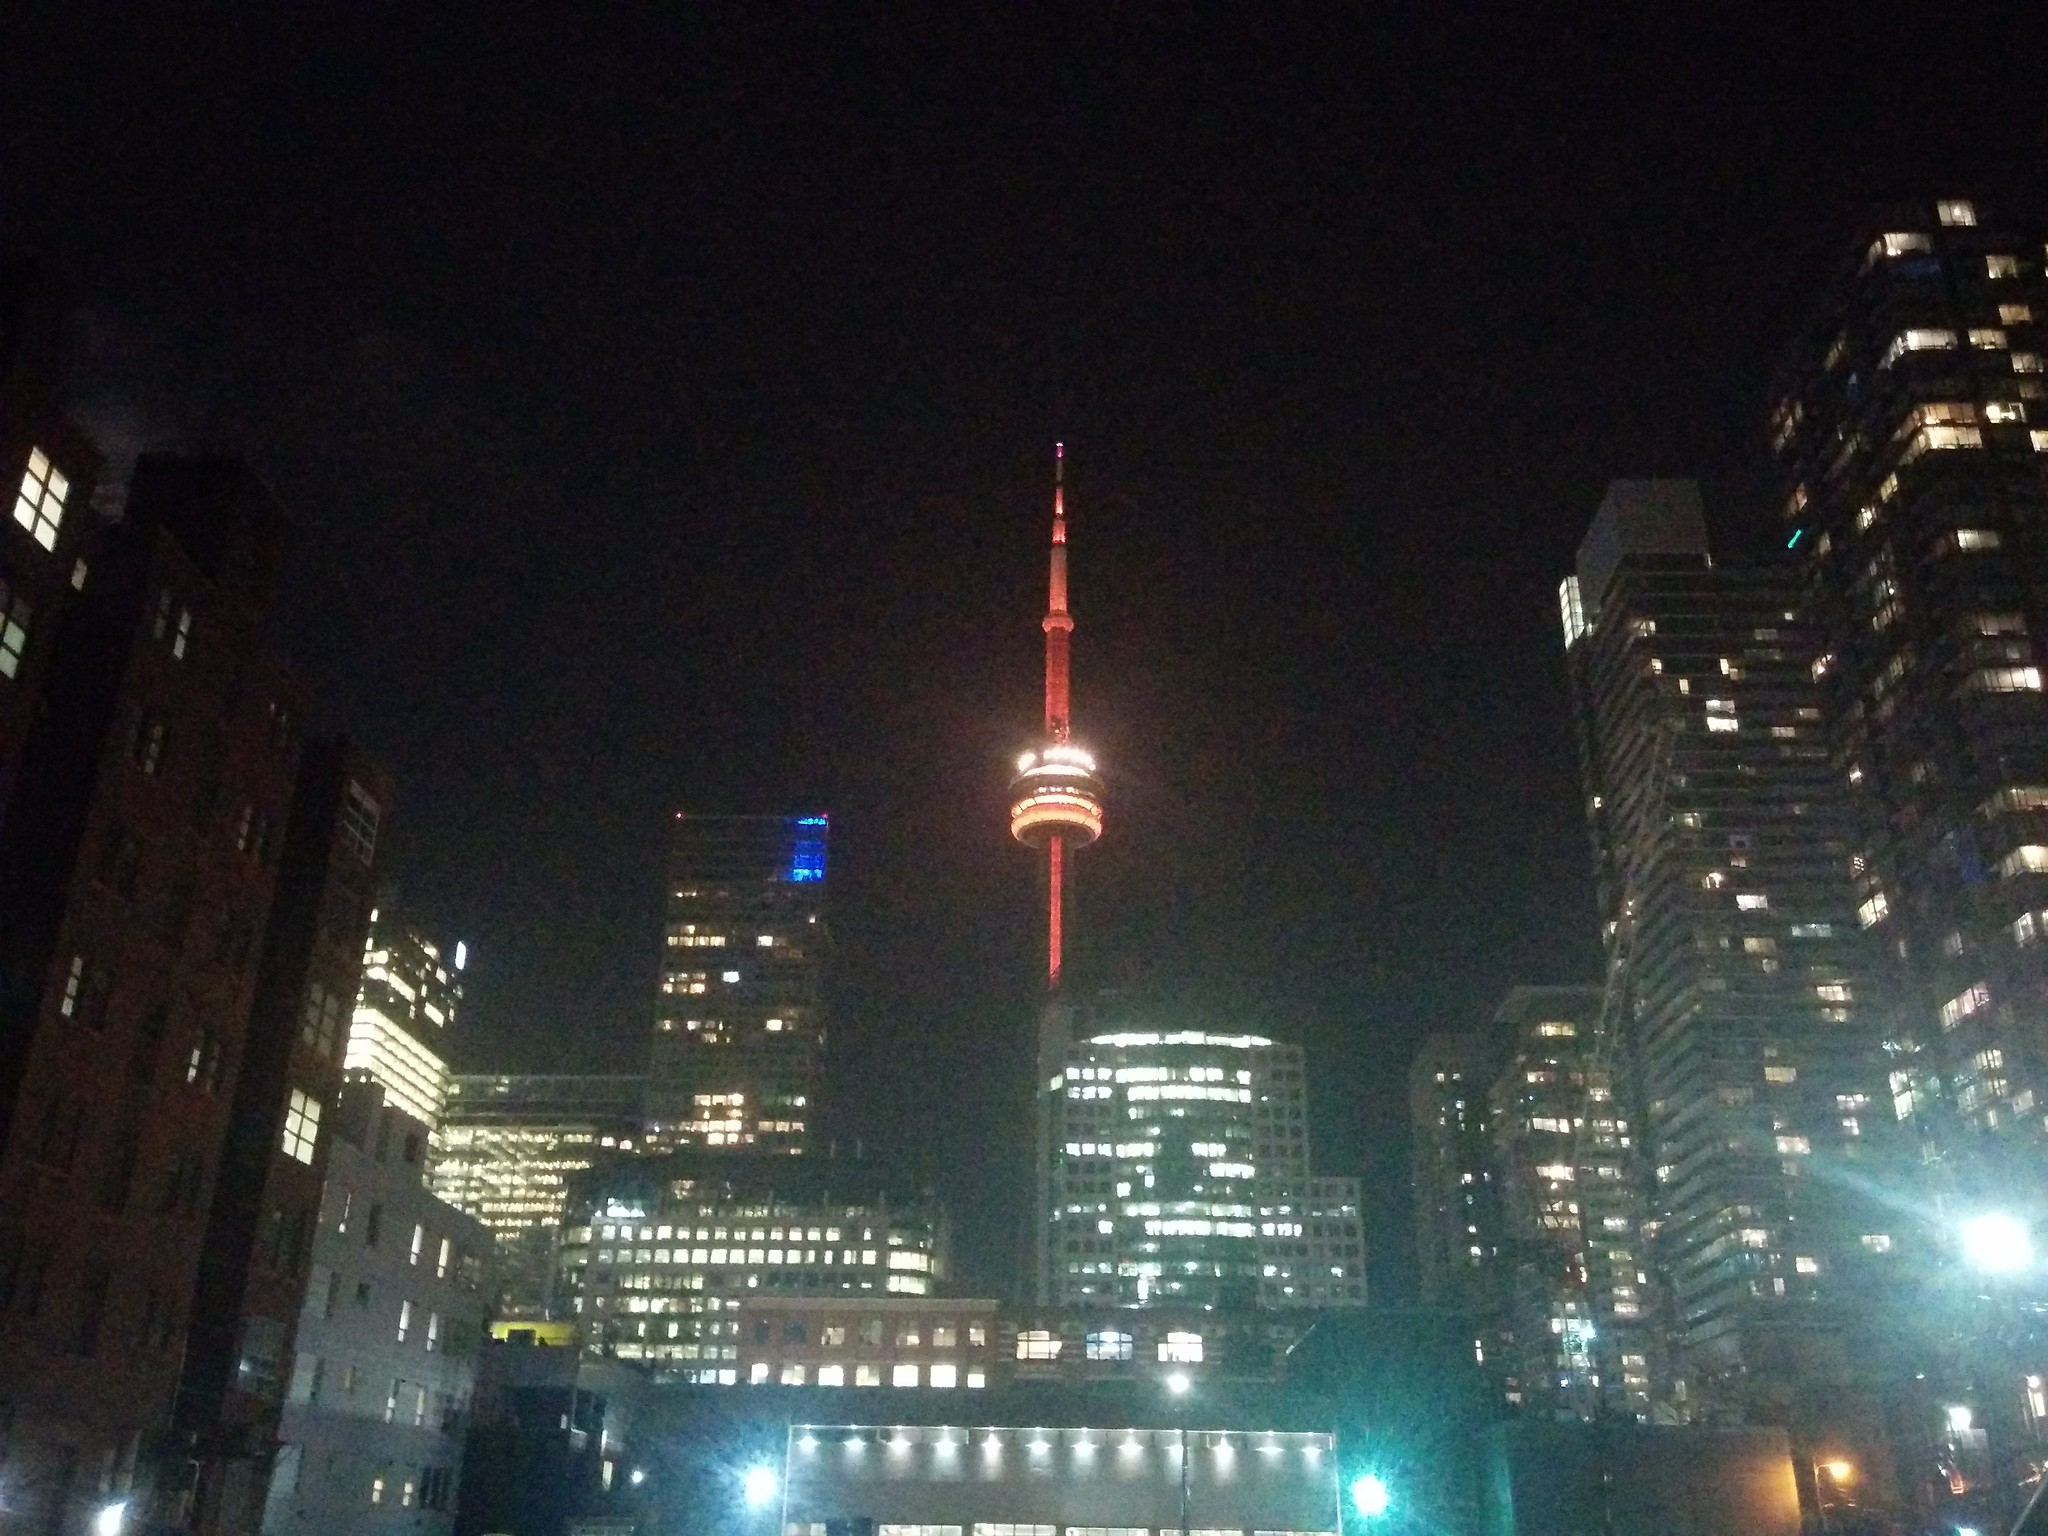 Looking south from Richmond Street at the CN Tower in red #toronto #cntower #richmondstreet #entertainmentdistrict #skyline #lights #night #red